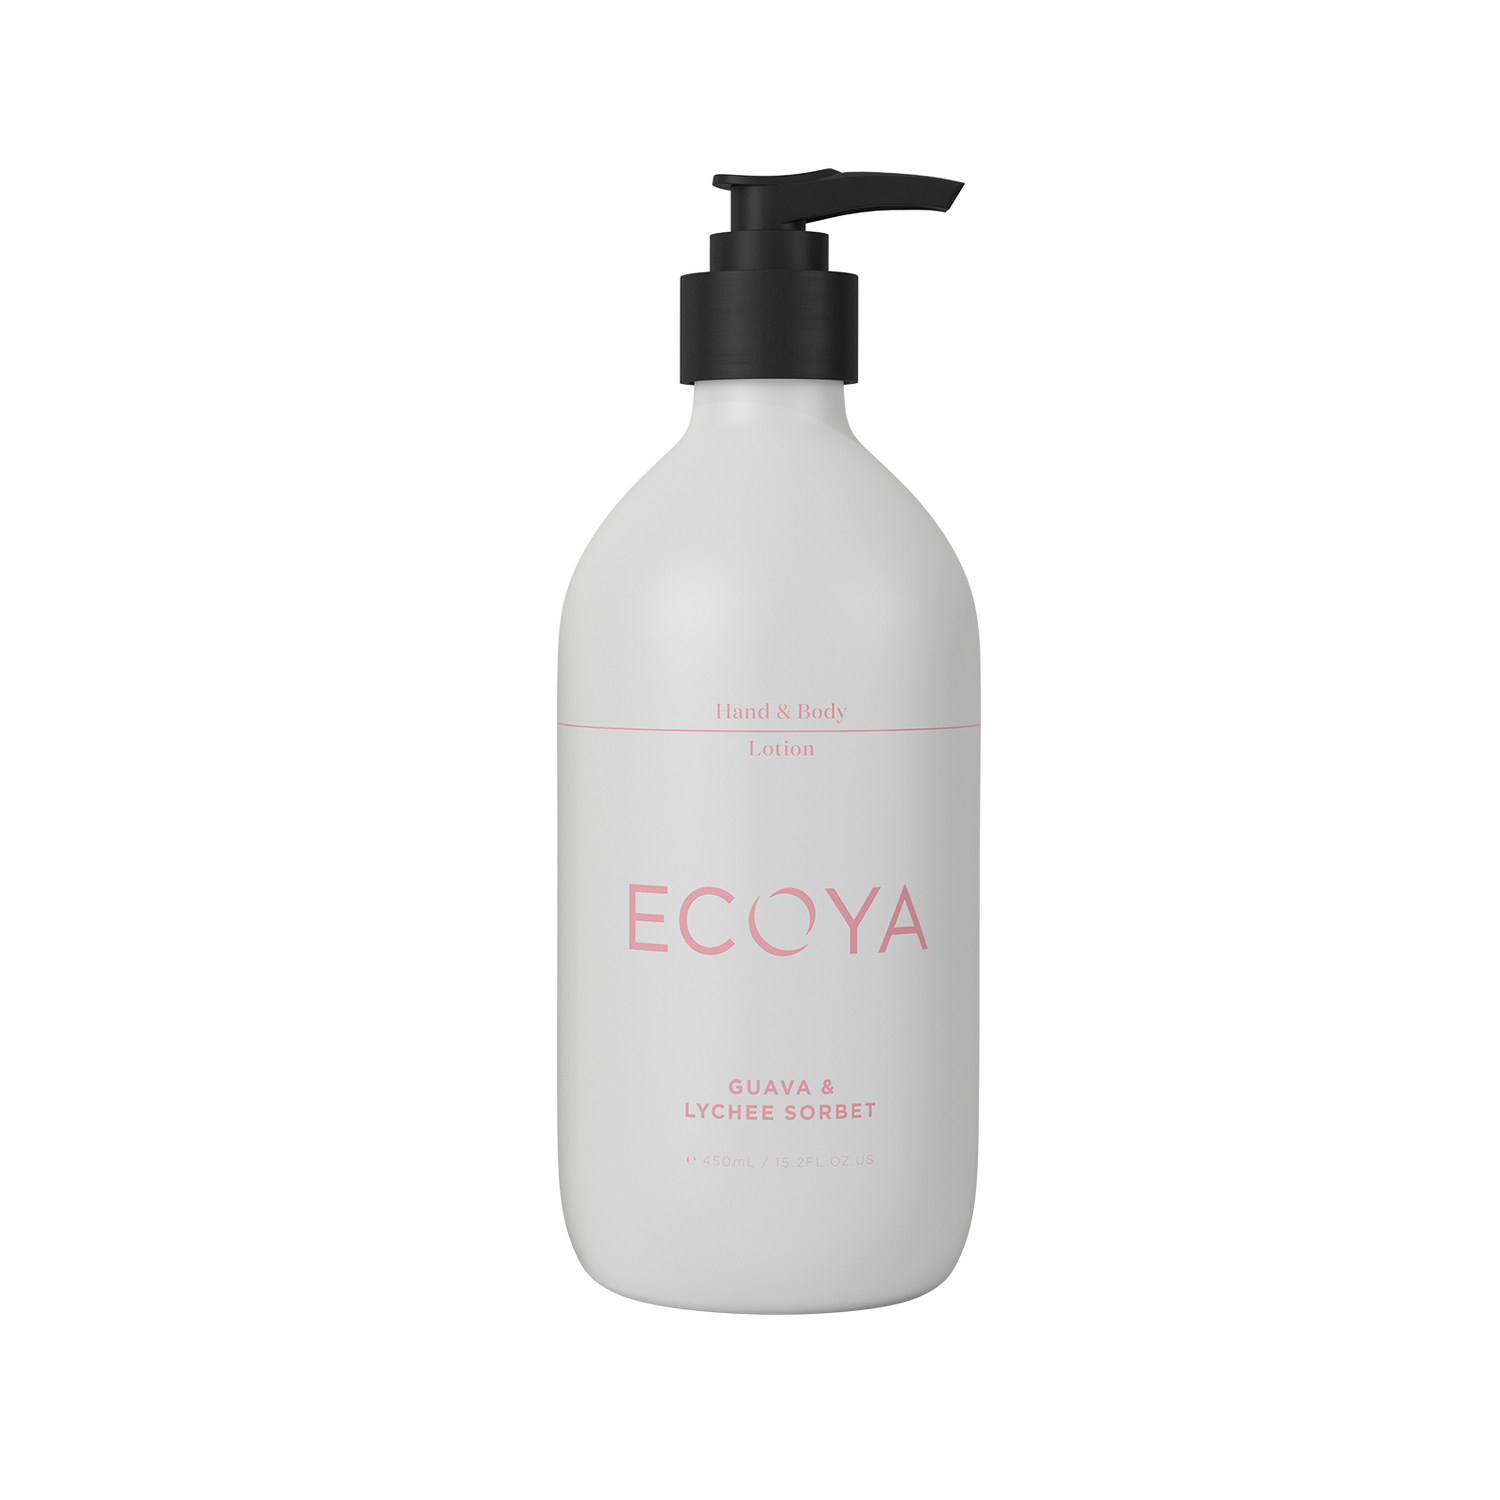 ECOYA body wash